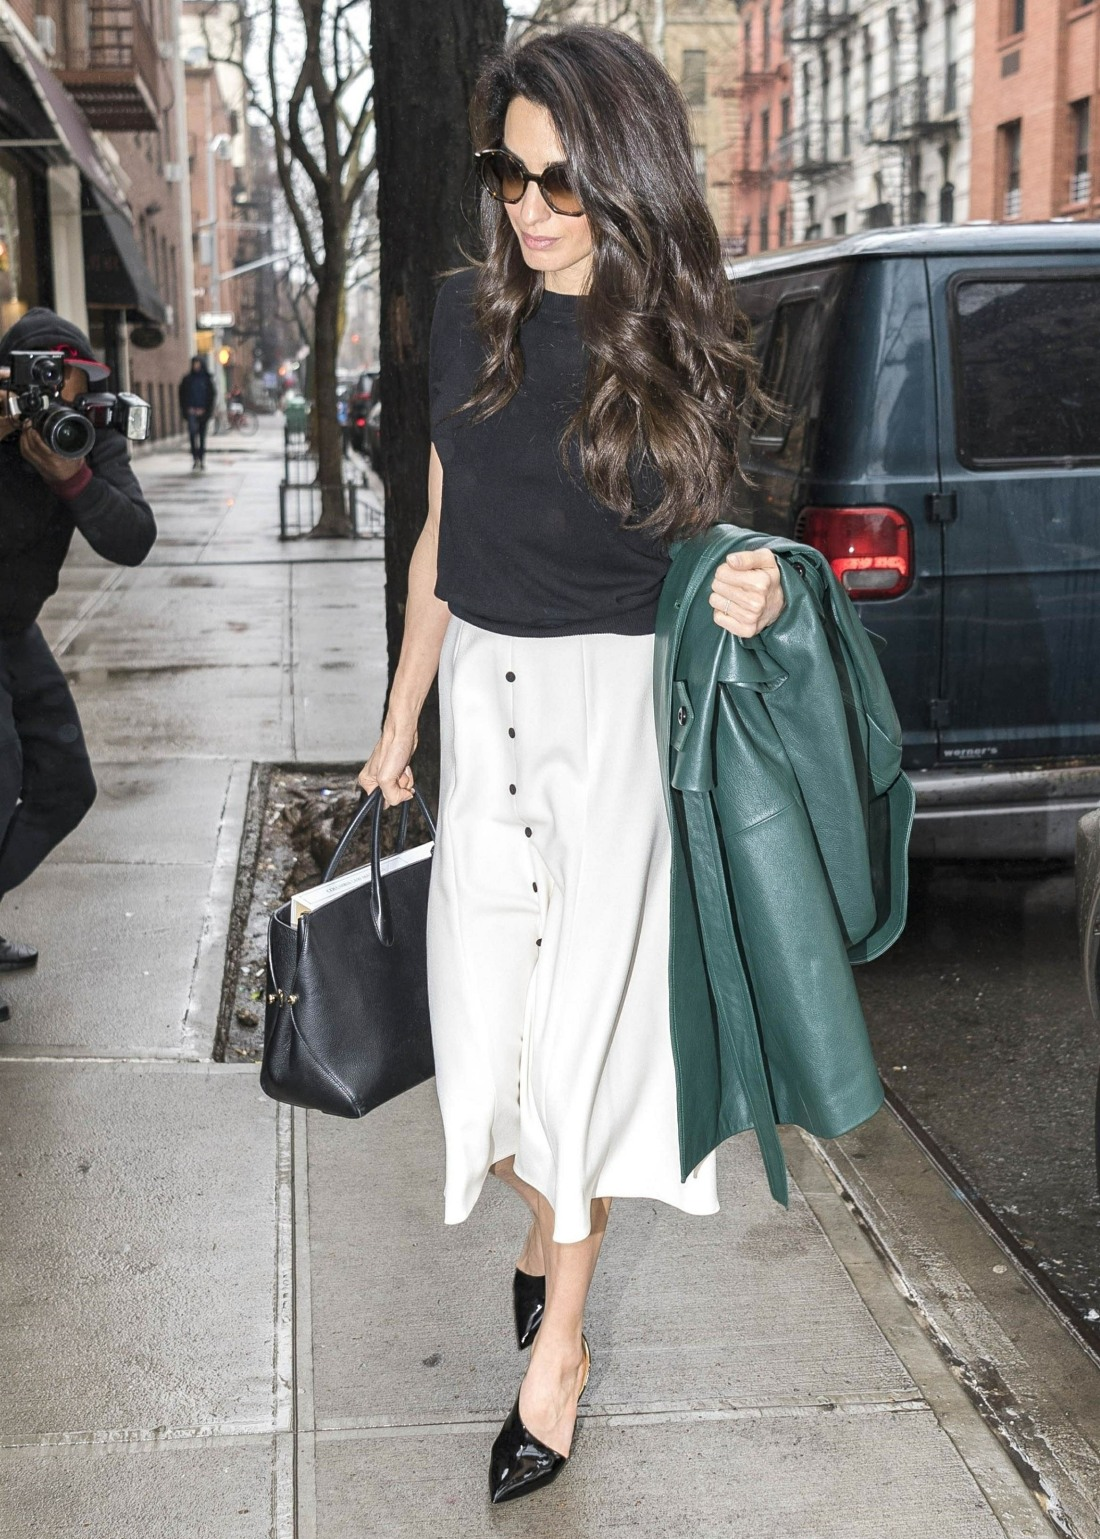 Amal Clooney returns home after teaching at Columbia Law School